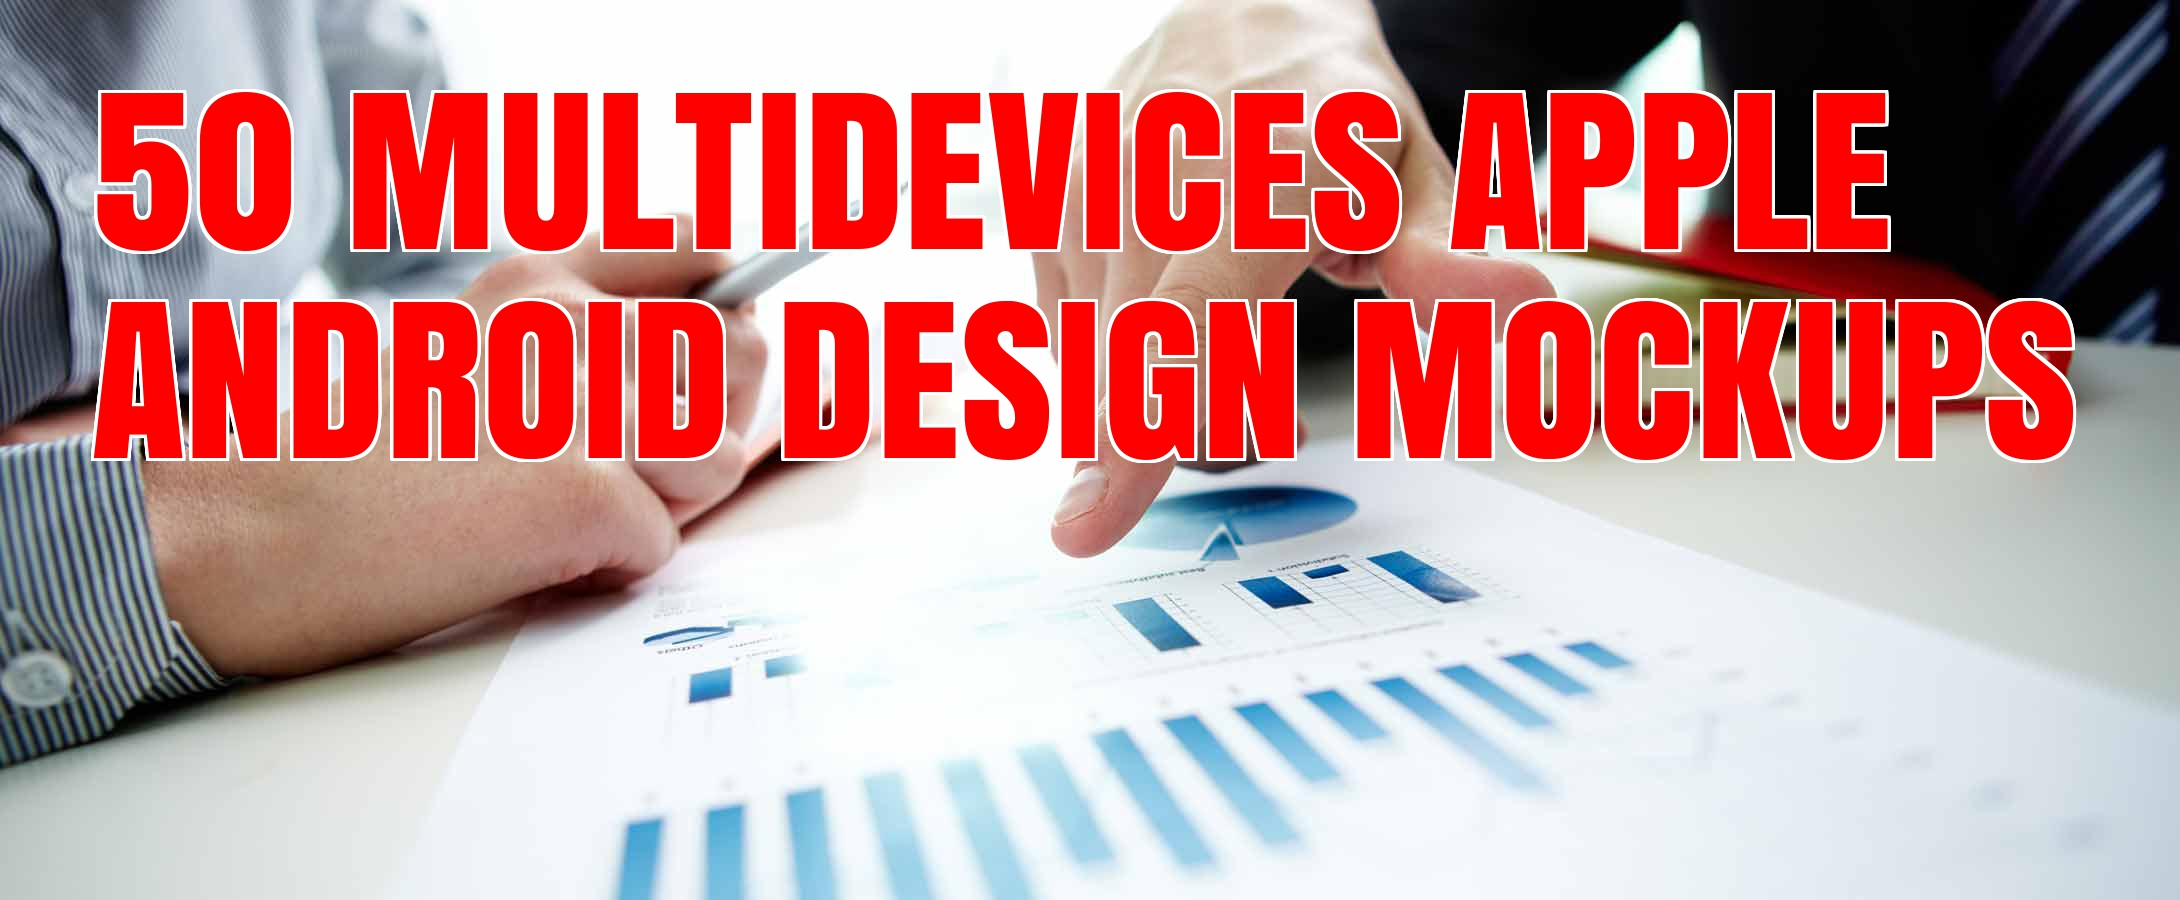 I will supply 50 PROFESSIONAL Multidevices Design Mockups